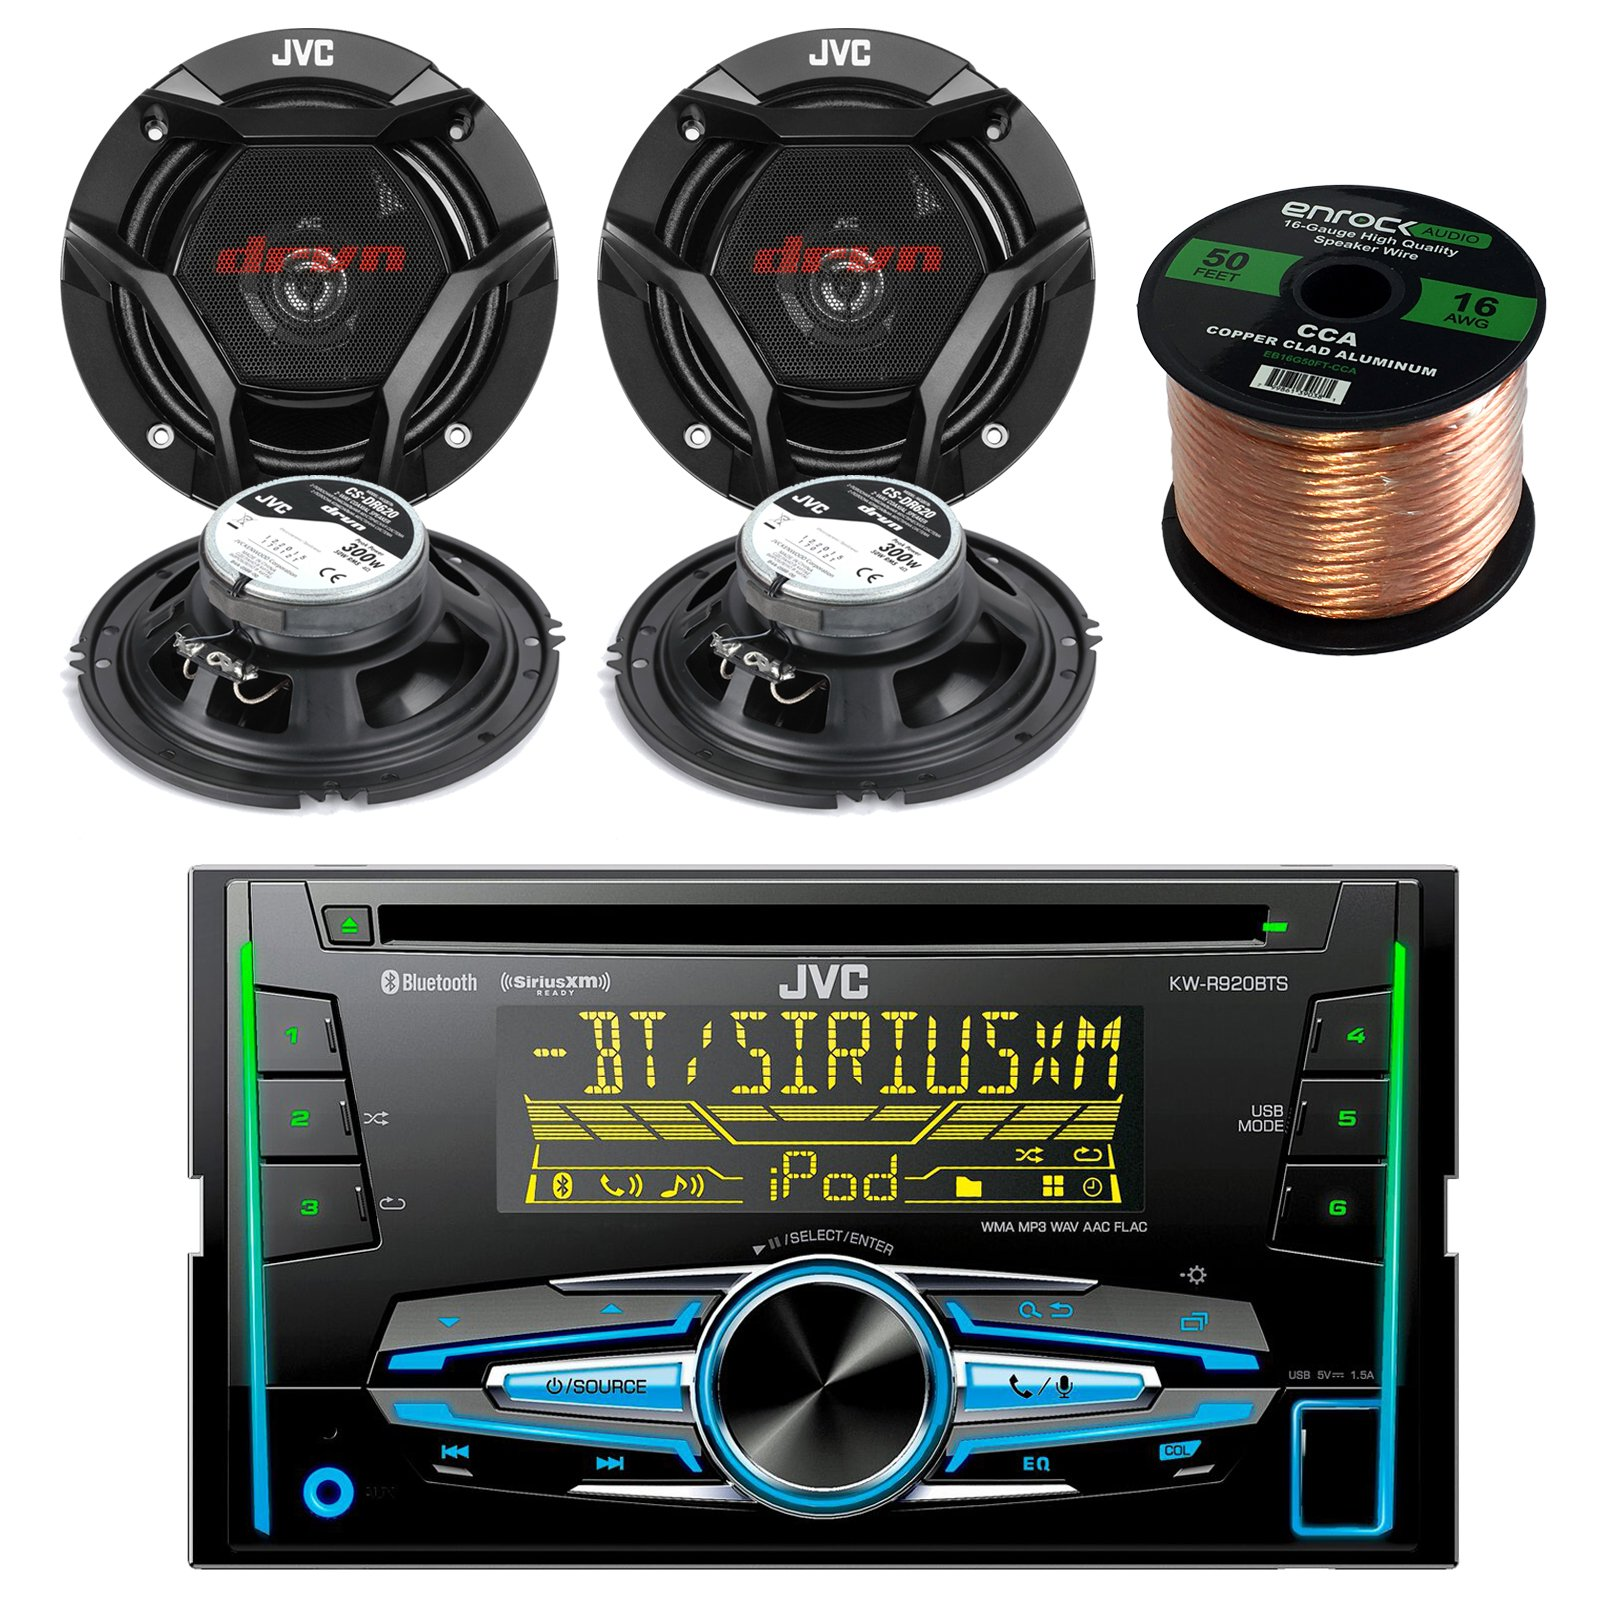 JVC KW-R920BTS Double DIN Bluetooth Car Stereo Receiver Bundle Combo With 4x JVC CS-DR620 6.5'' Inch 300-Watt 2-Way Audio Coaxial Speakers + Enrock 50 Foot 16 Guage Speaker Wire by JVCAudioBundle